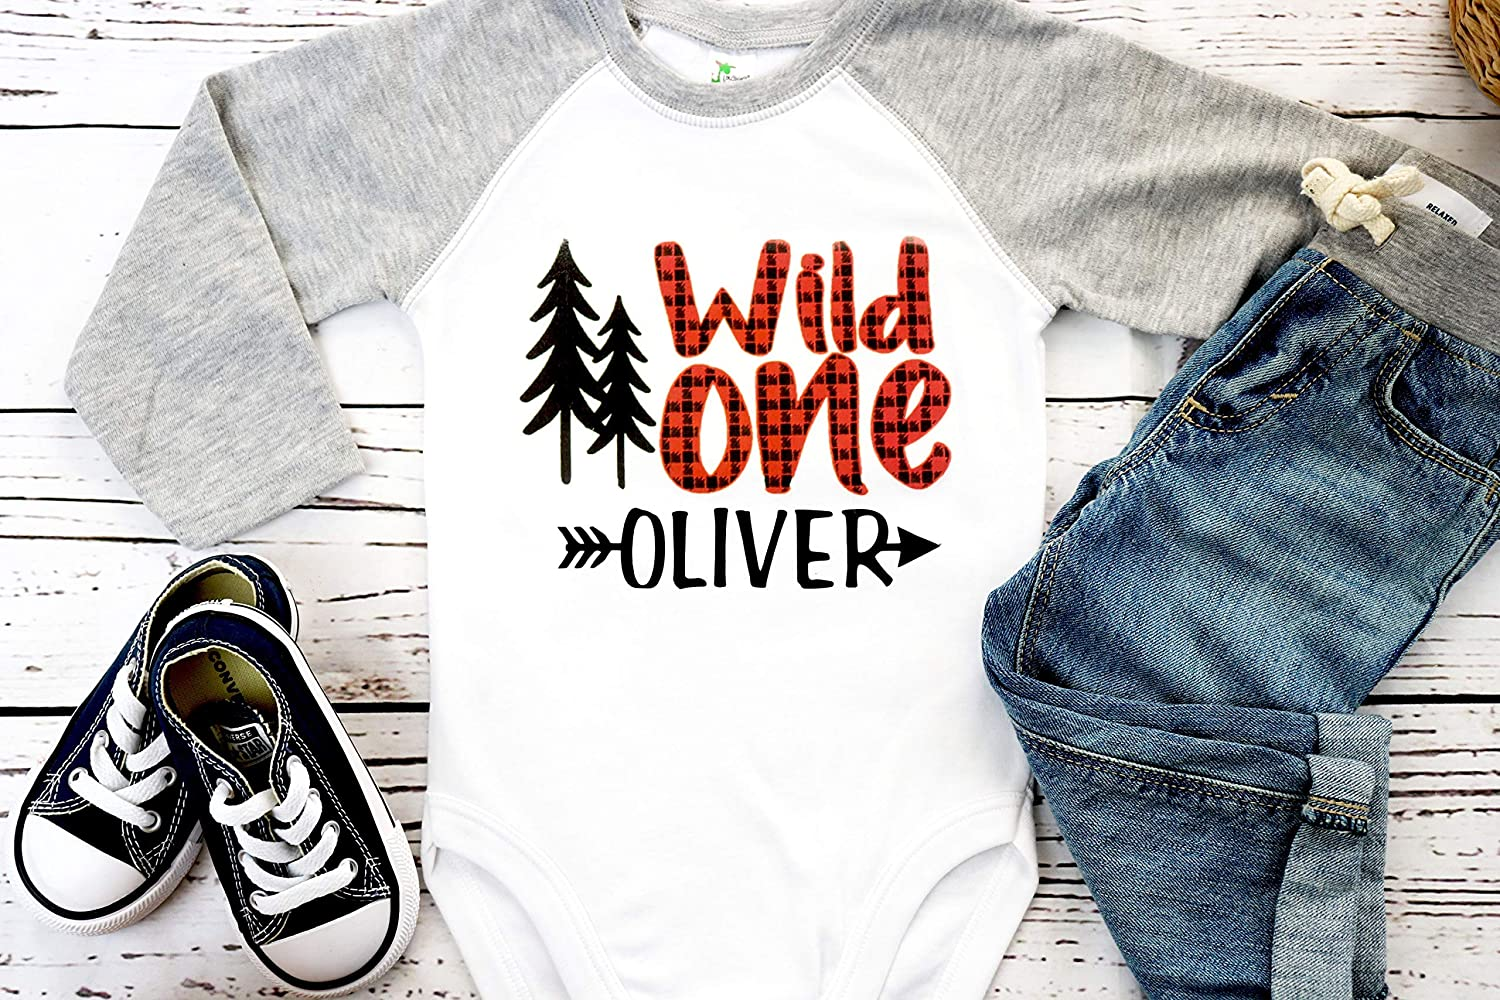 wild one bodysuit first birthday shirt lumber jack birthday shirt Lumberjack birthday bear shirt buffalo plaid birthday shirt deer antlers boys birthday shirt 1st birthday shirt